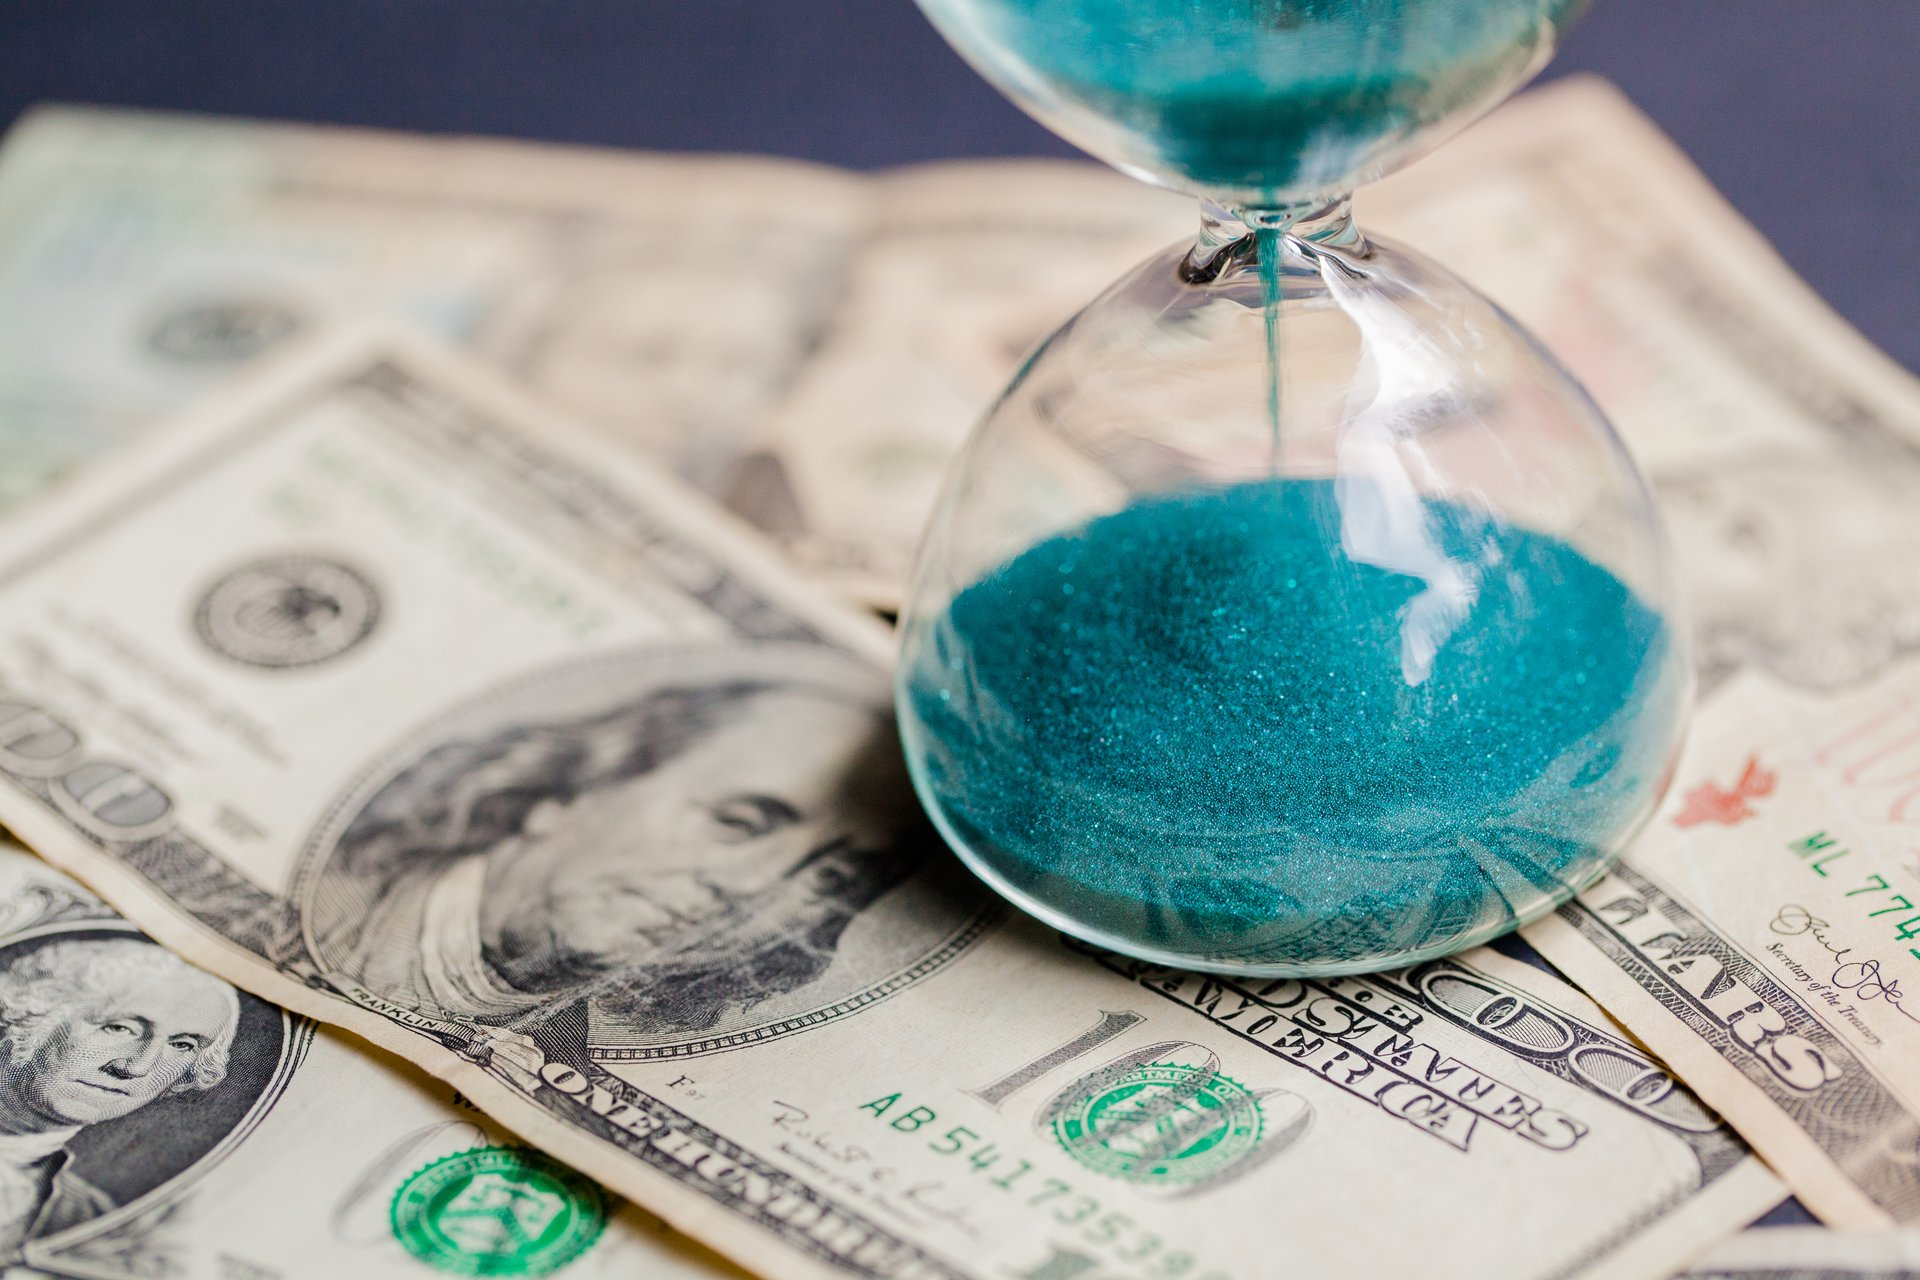 Sand flows through an hourglass next to money